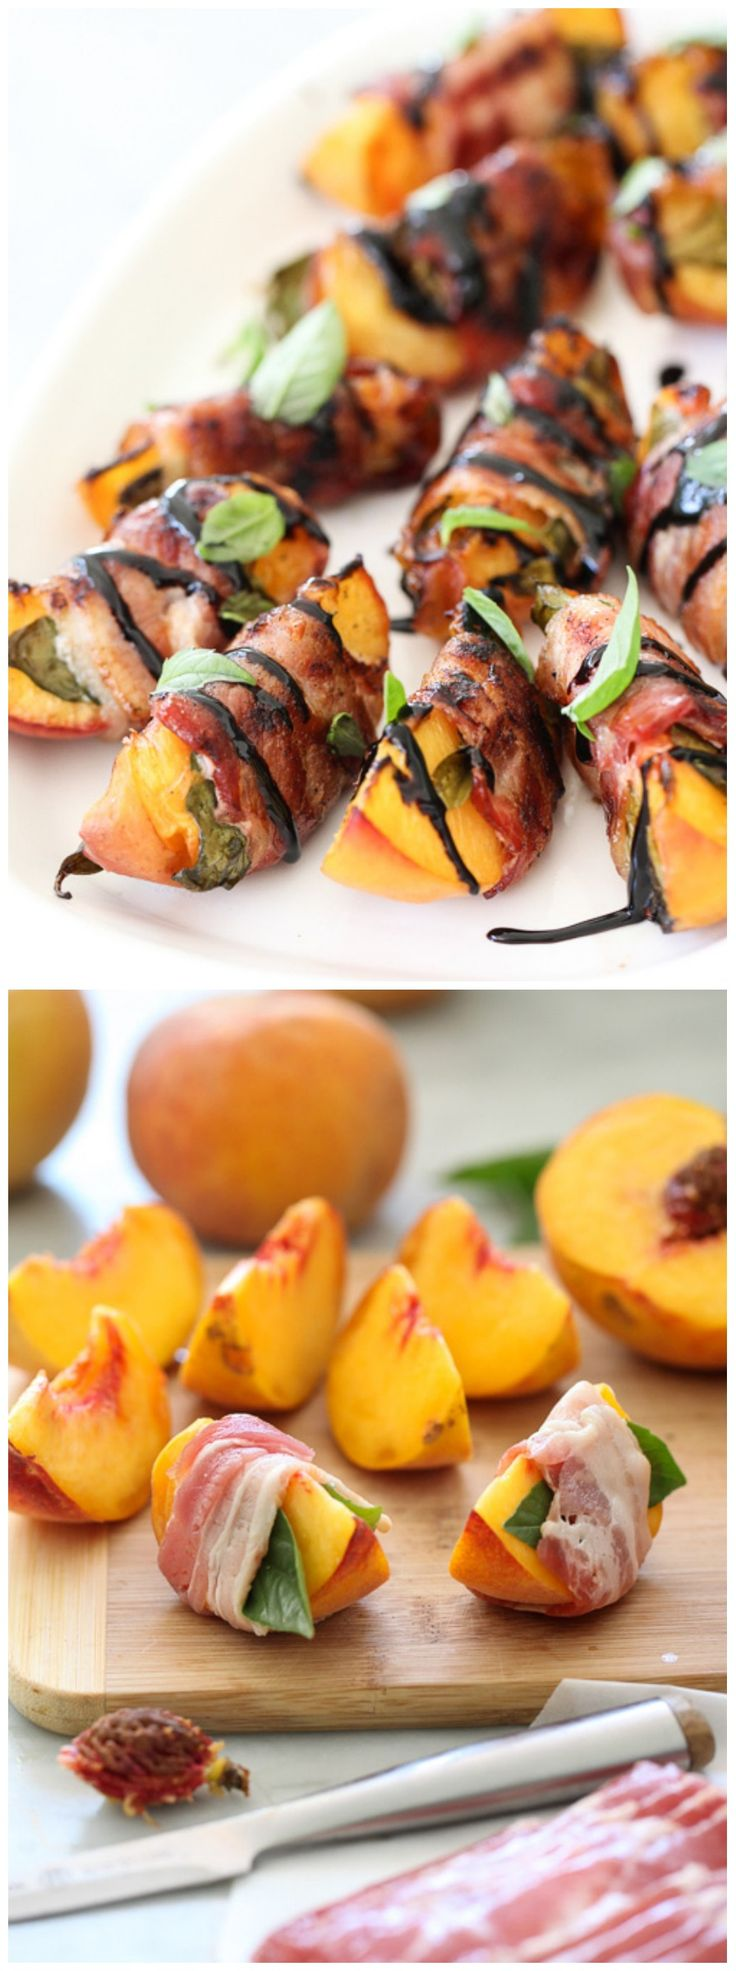 Bacon Wrapped Grilled Peaches with Balsamic Glaze- great app idea for the meat eaters! | FoodieCrush